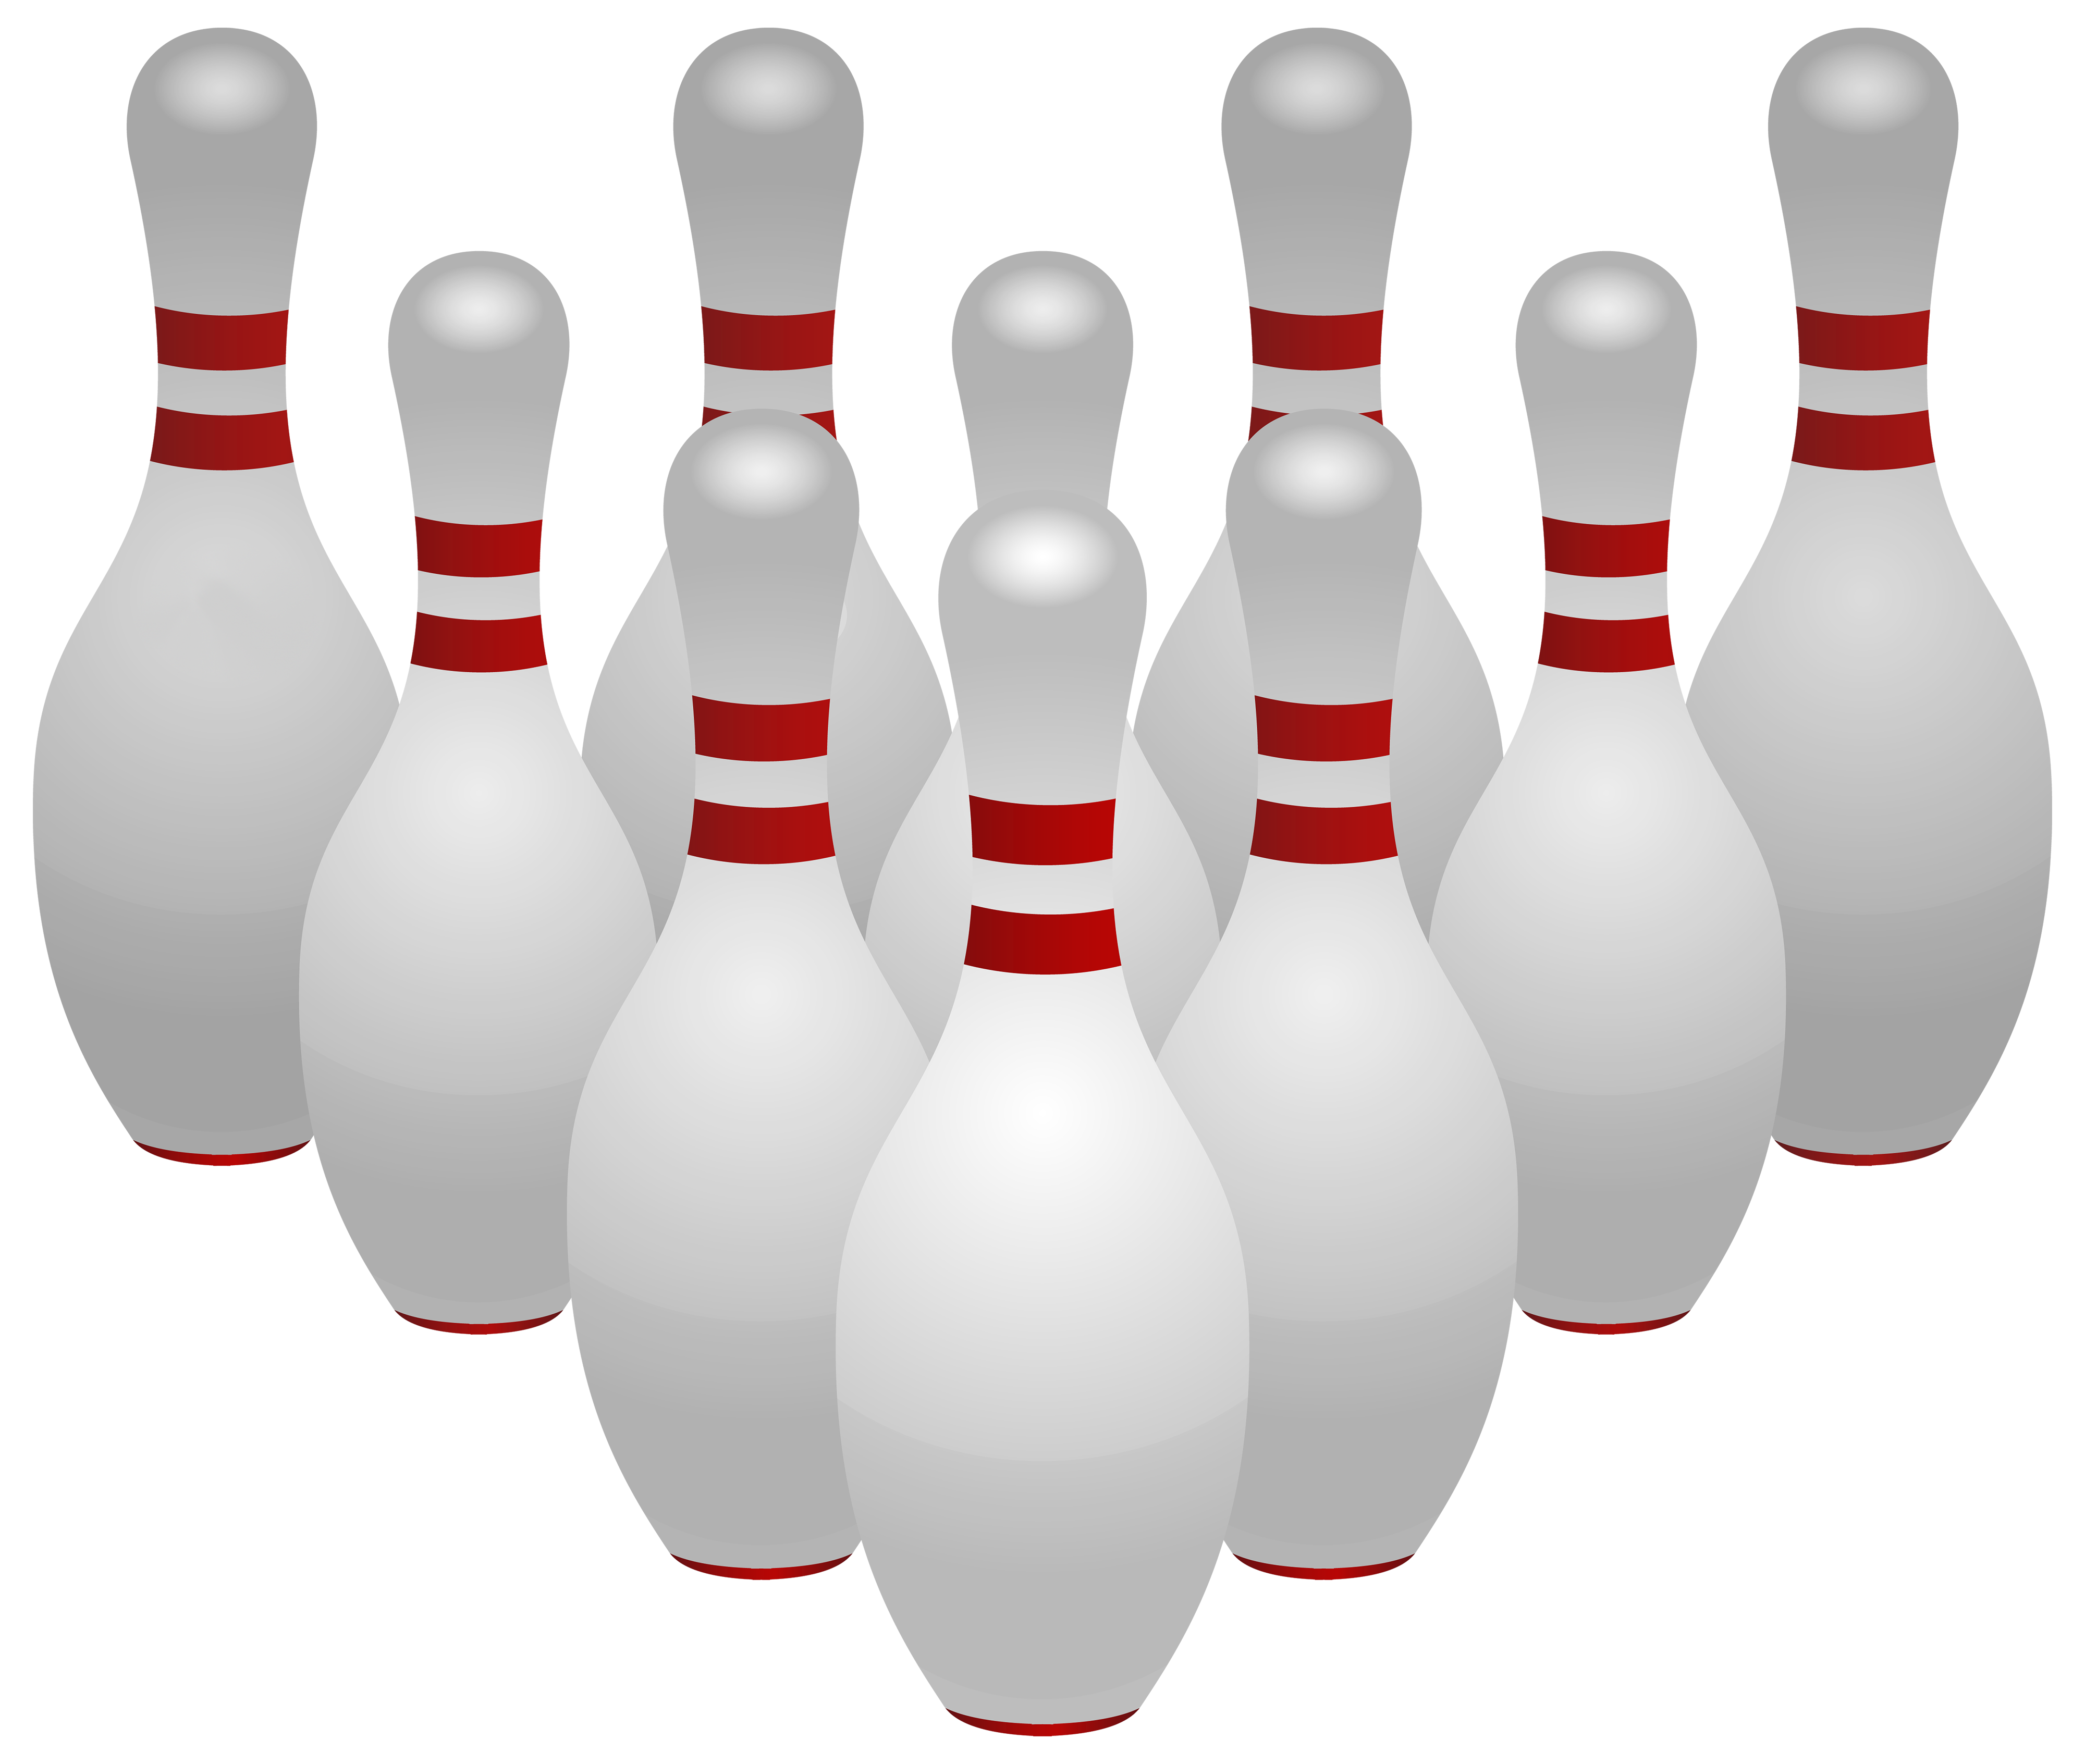 bowling ball pins transparent clipart image 9001